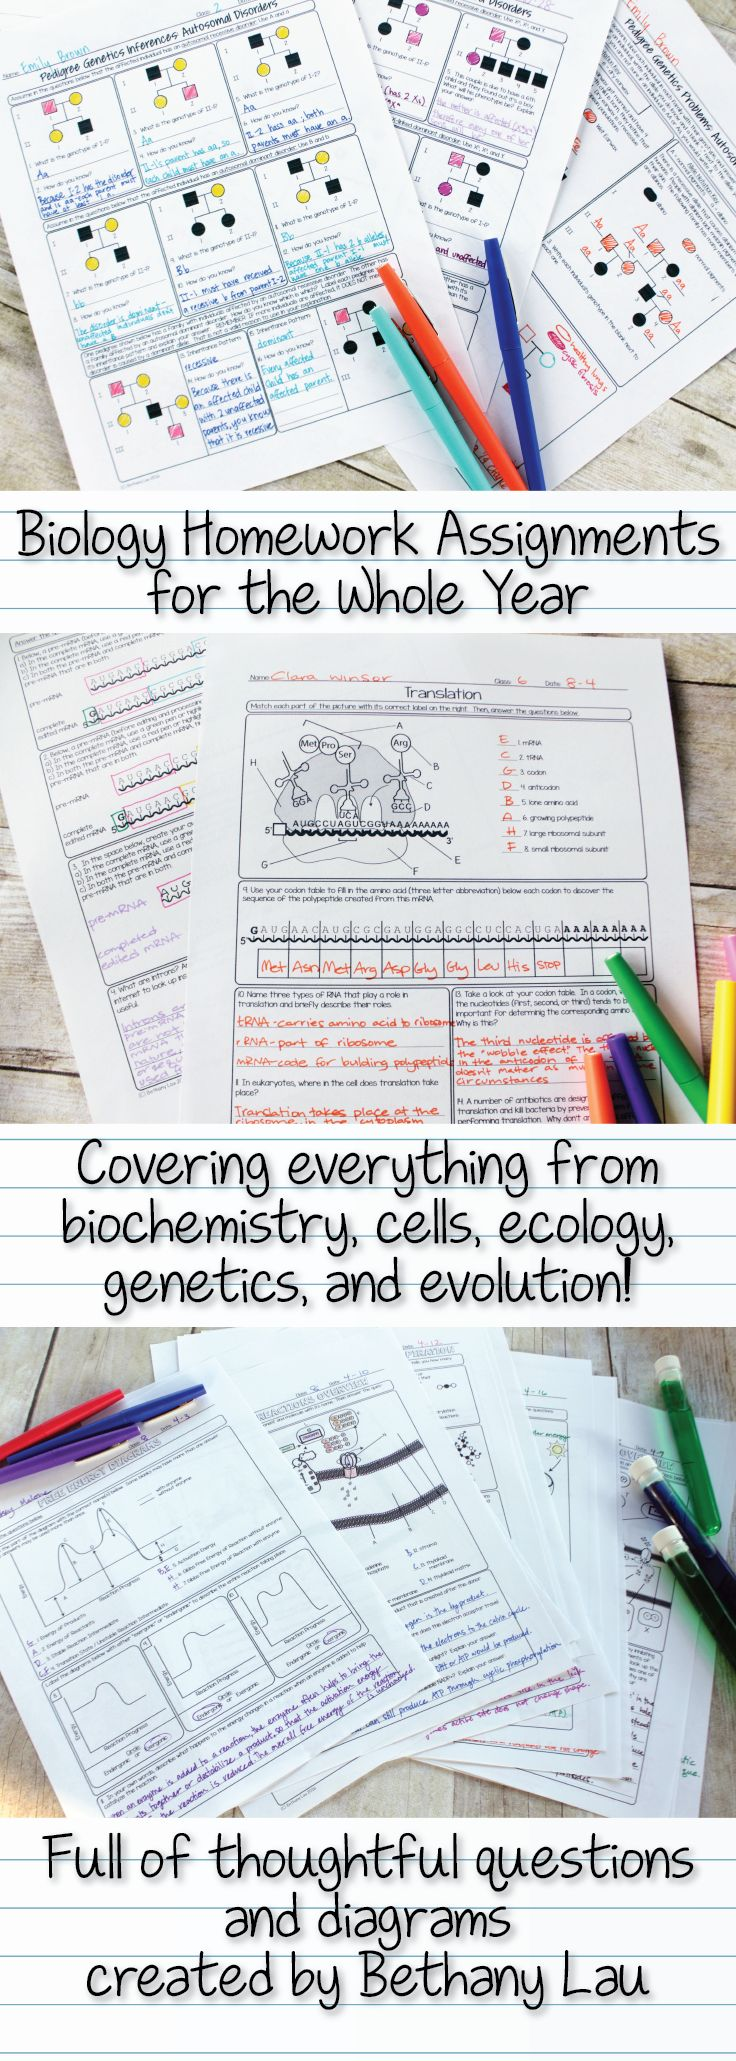 A whole year's worth of biology worksheets or homework pages, full of thoughtful questions, carefully designed diagrams, and unique connections between units.  They cover 10 whole units covering introduction to life, cells, photosynthesis and respiration, cell division, protein synthesis, genetics, evolution, and ecology! Created by Bethany Lau and sold on Teachers Pay Teachers at Science with Mrs. Lau's store.